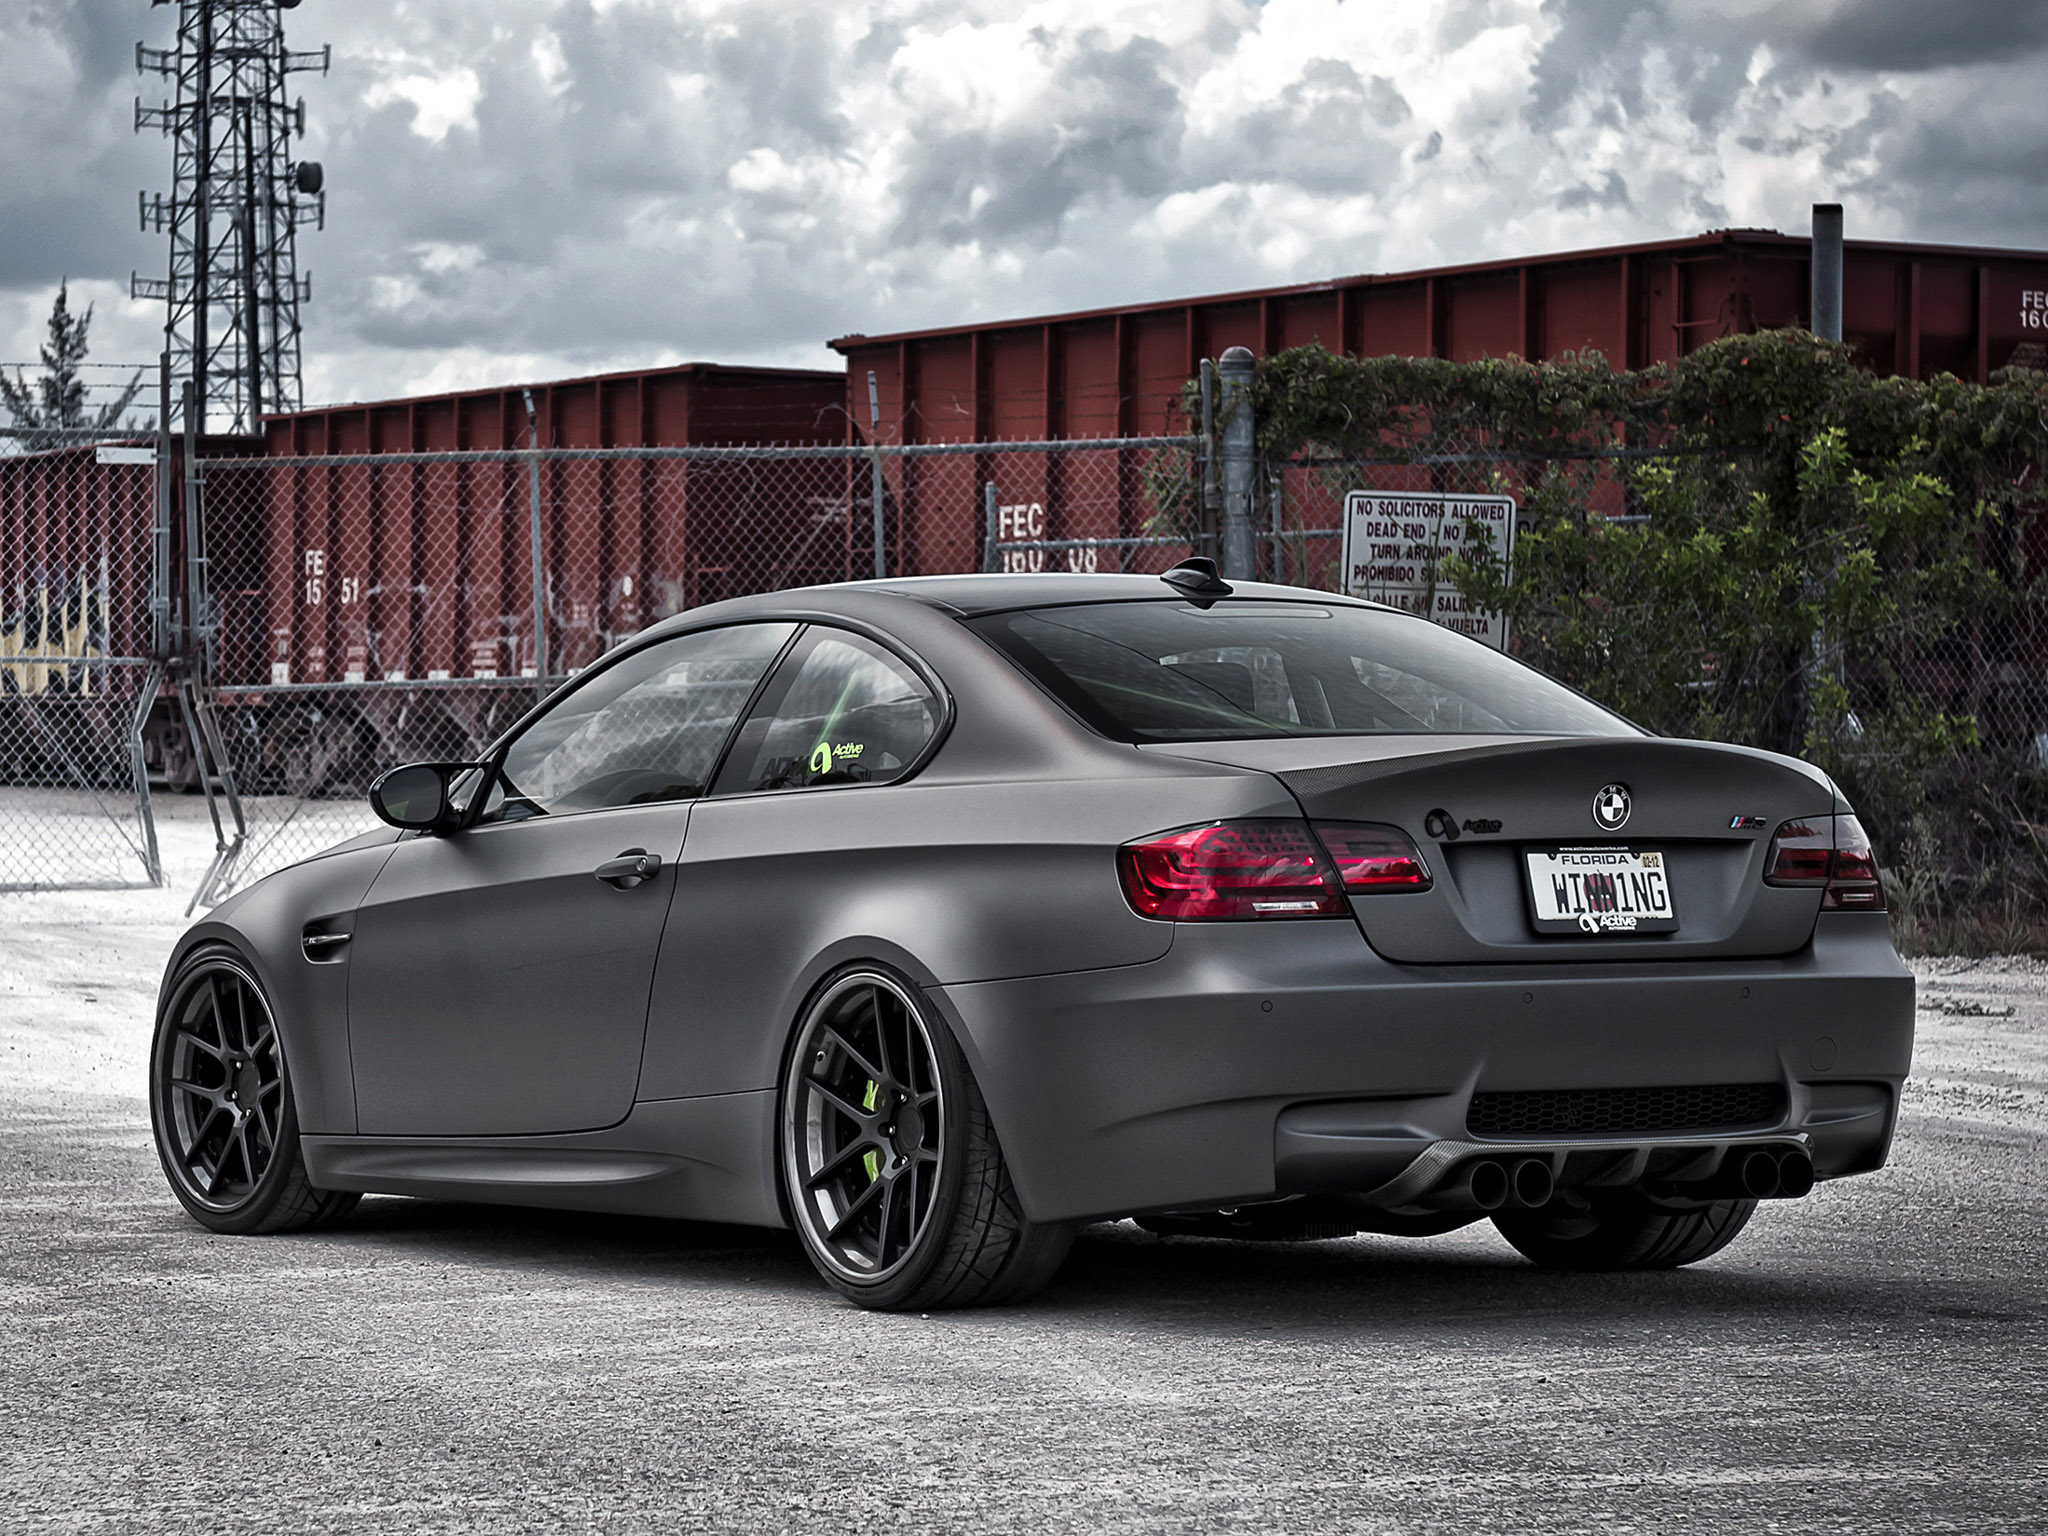 active autowerke bmw m3 coupe e92 2009 active autowerke bmw m3 coupe e92 2009 photo 01 car in. Black Bedroom Furniture Sets. Home Design Ideas